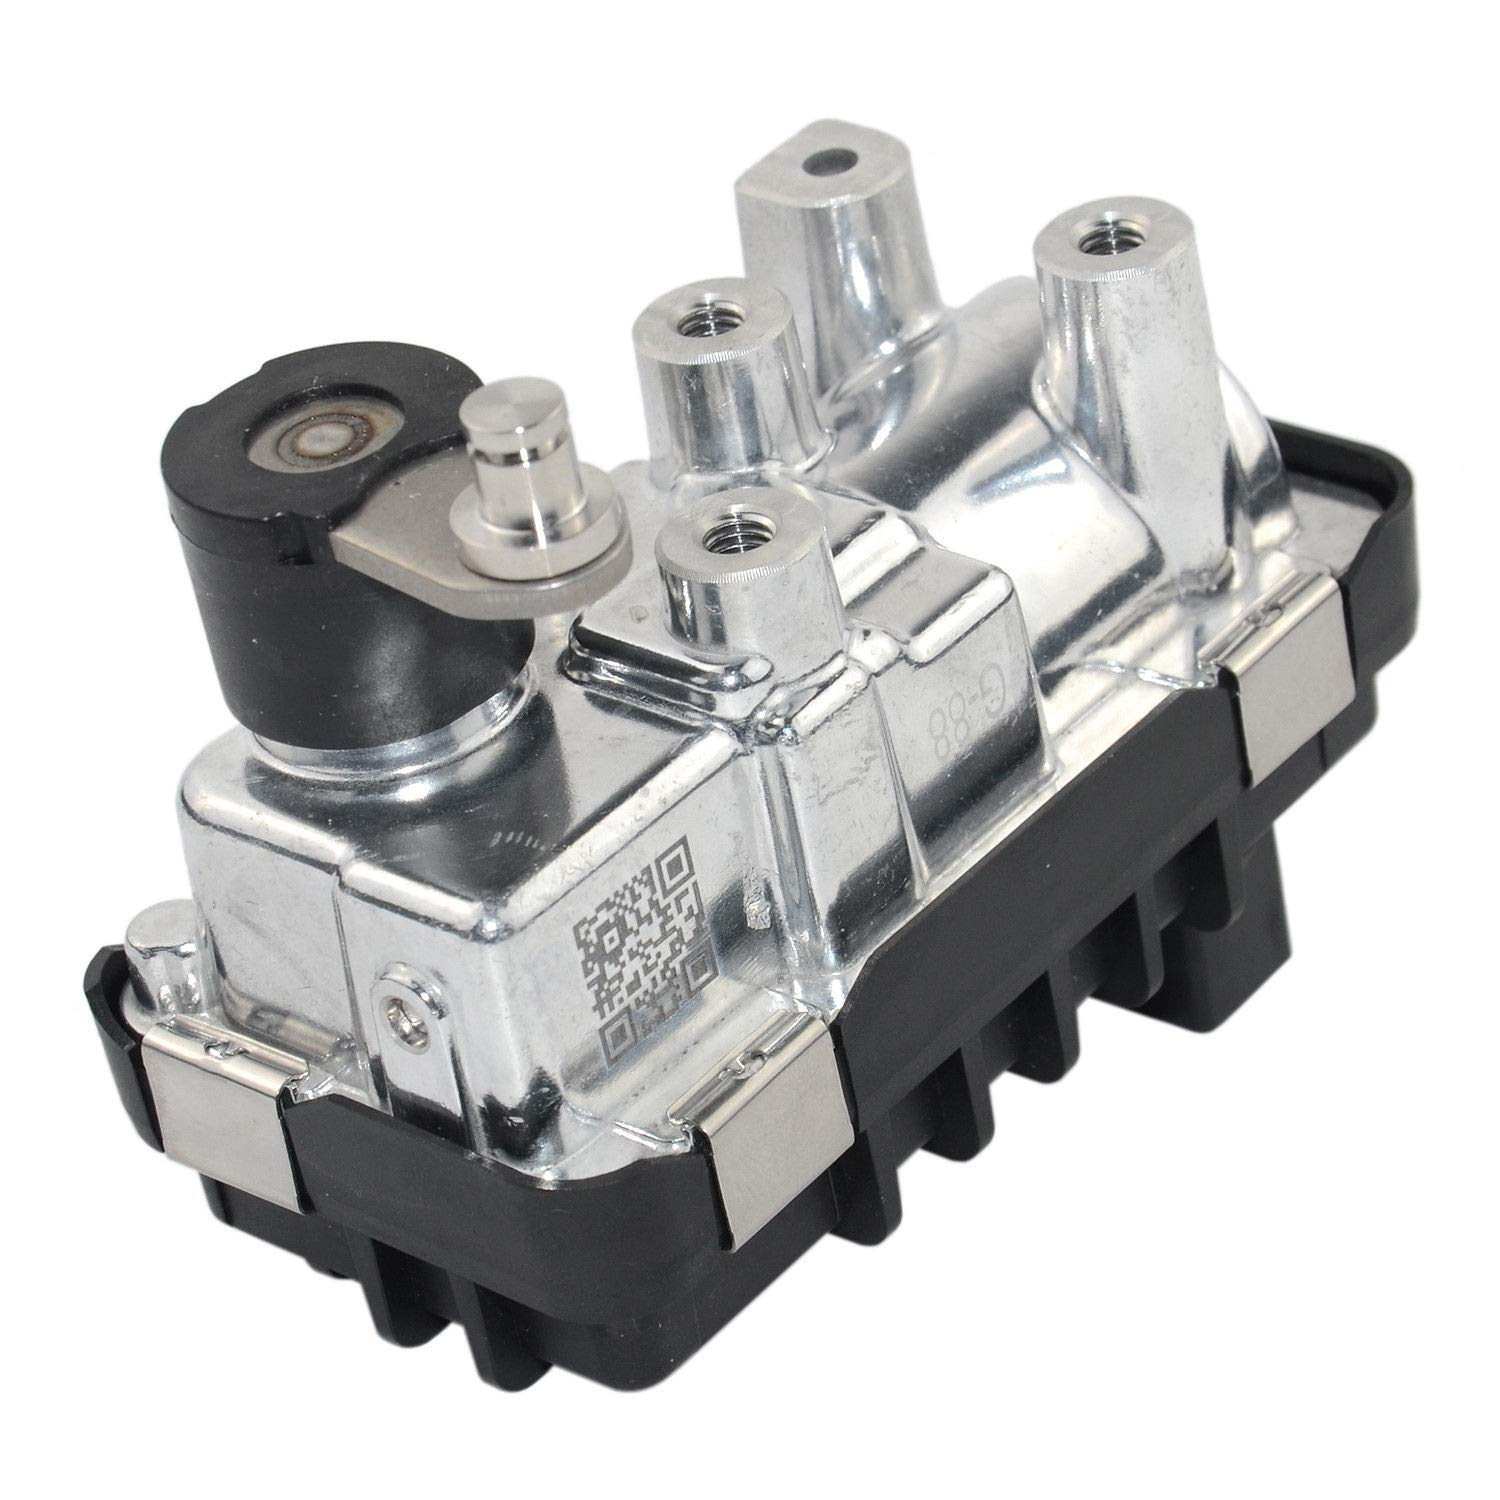 Turbo Electric Actuator Compatible for Mercedes M, GL ML320 GL320 R320 CDI 730314 6NW009228 AKWH